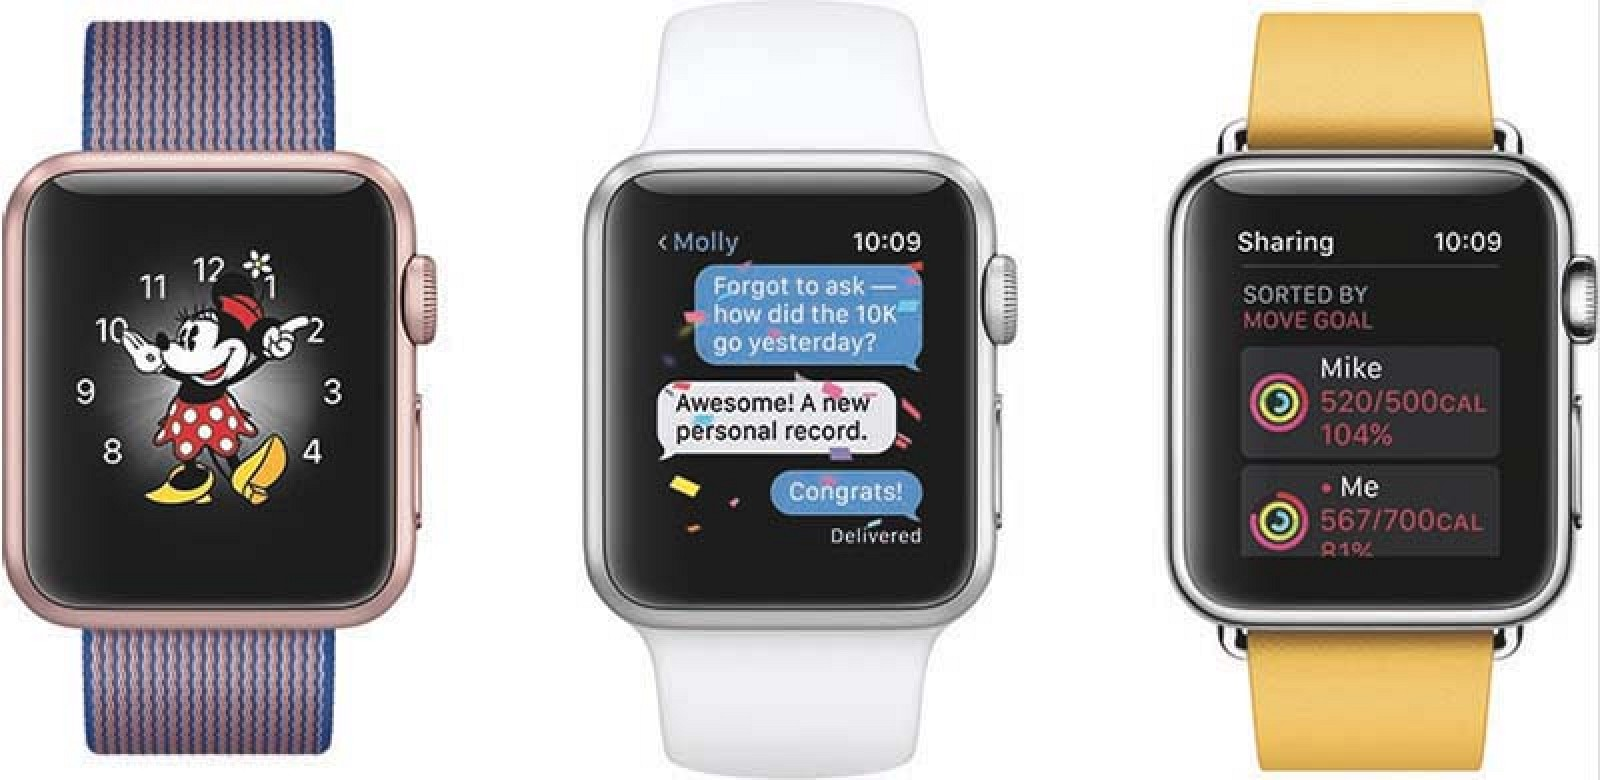 Apple Announces watchOS 3 With Dock, Control Center, New ...